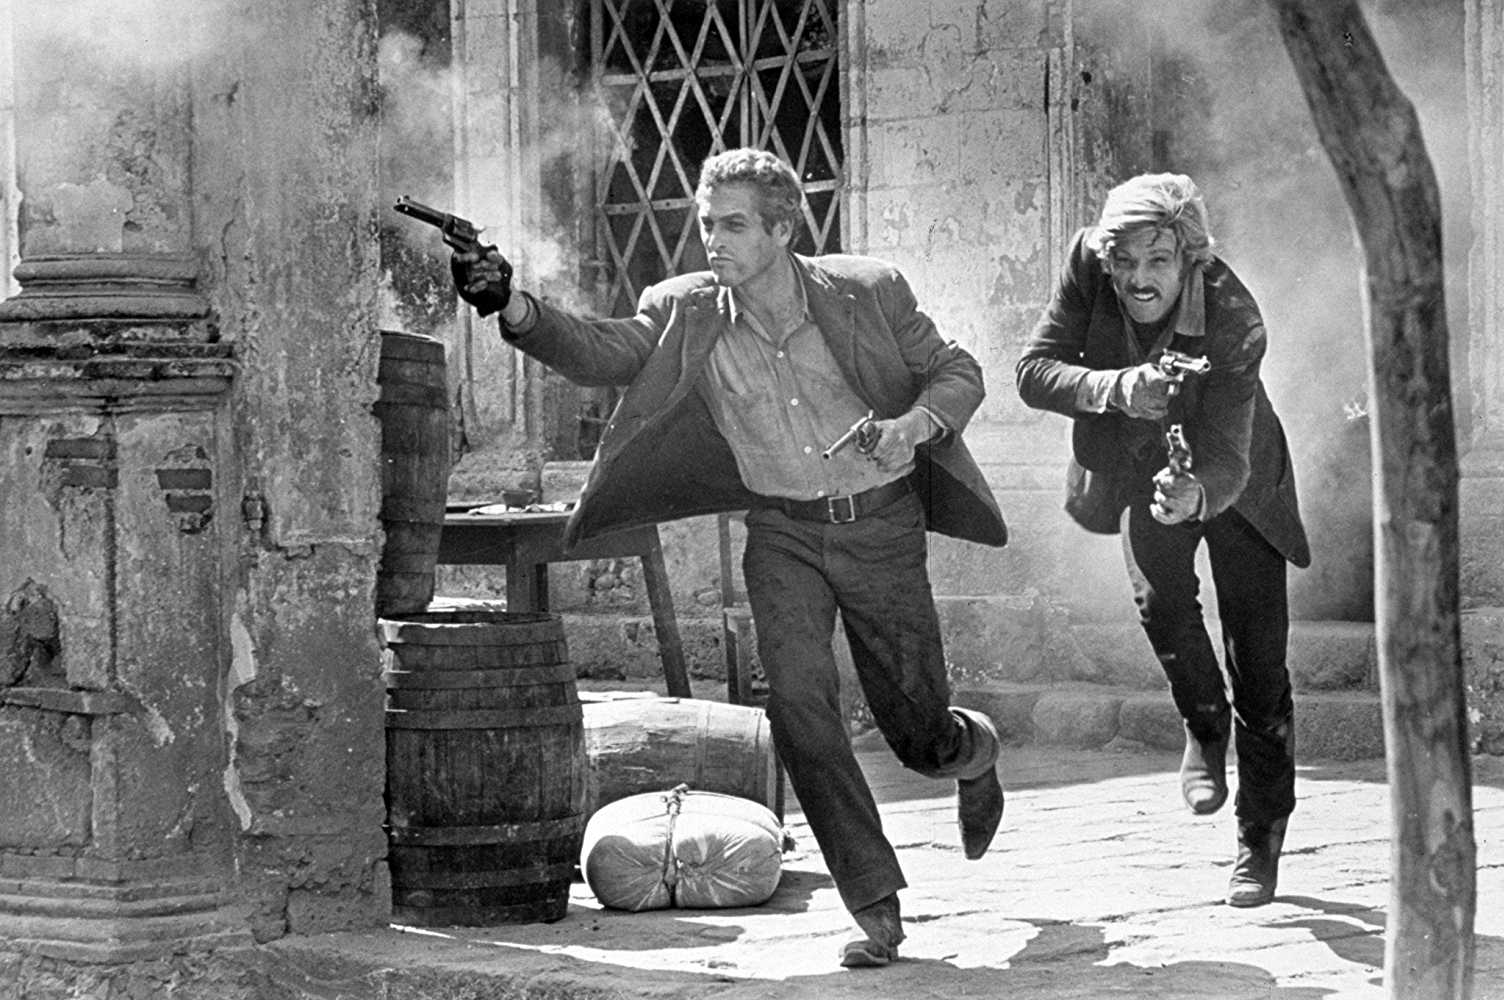 Paul Newman and Robert Redford in Butch Cassidy and the Sundance Kid (1969). (IMDb)